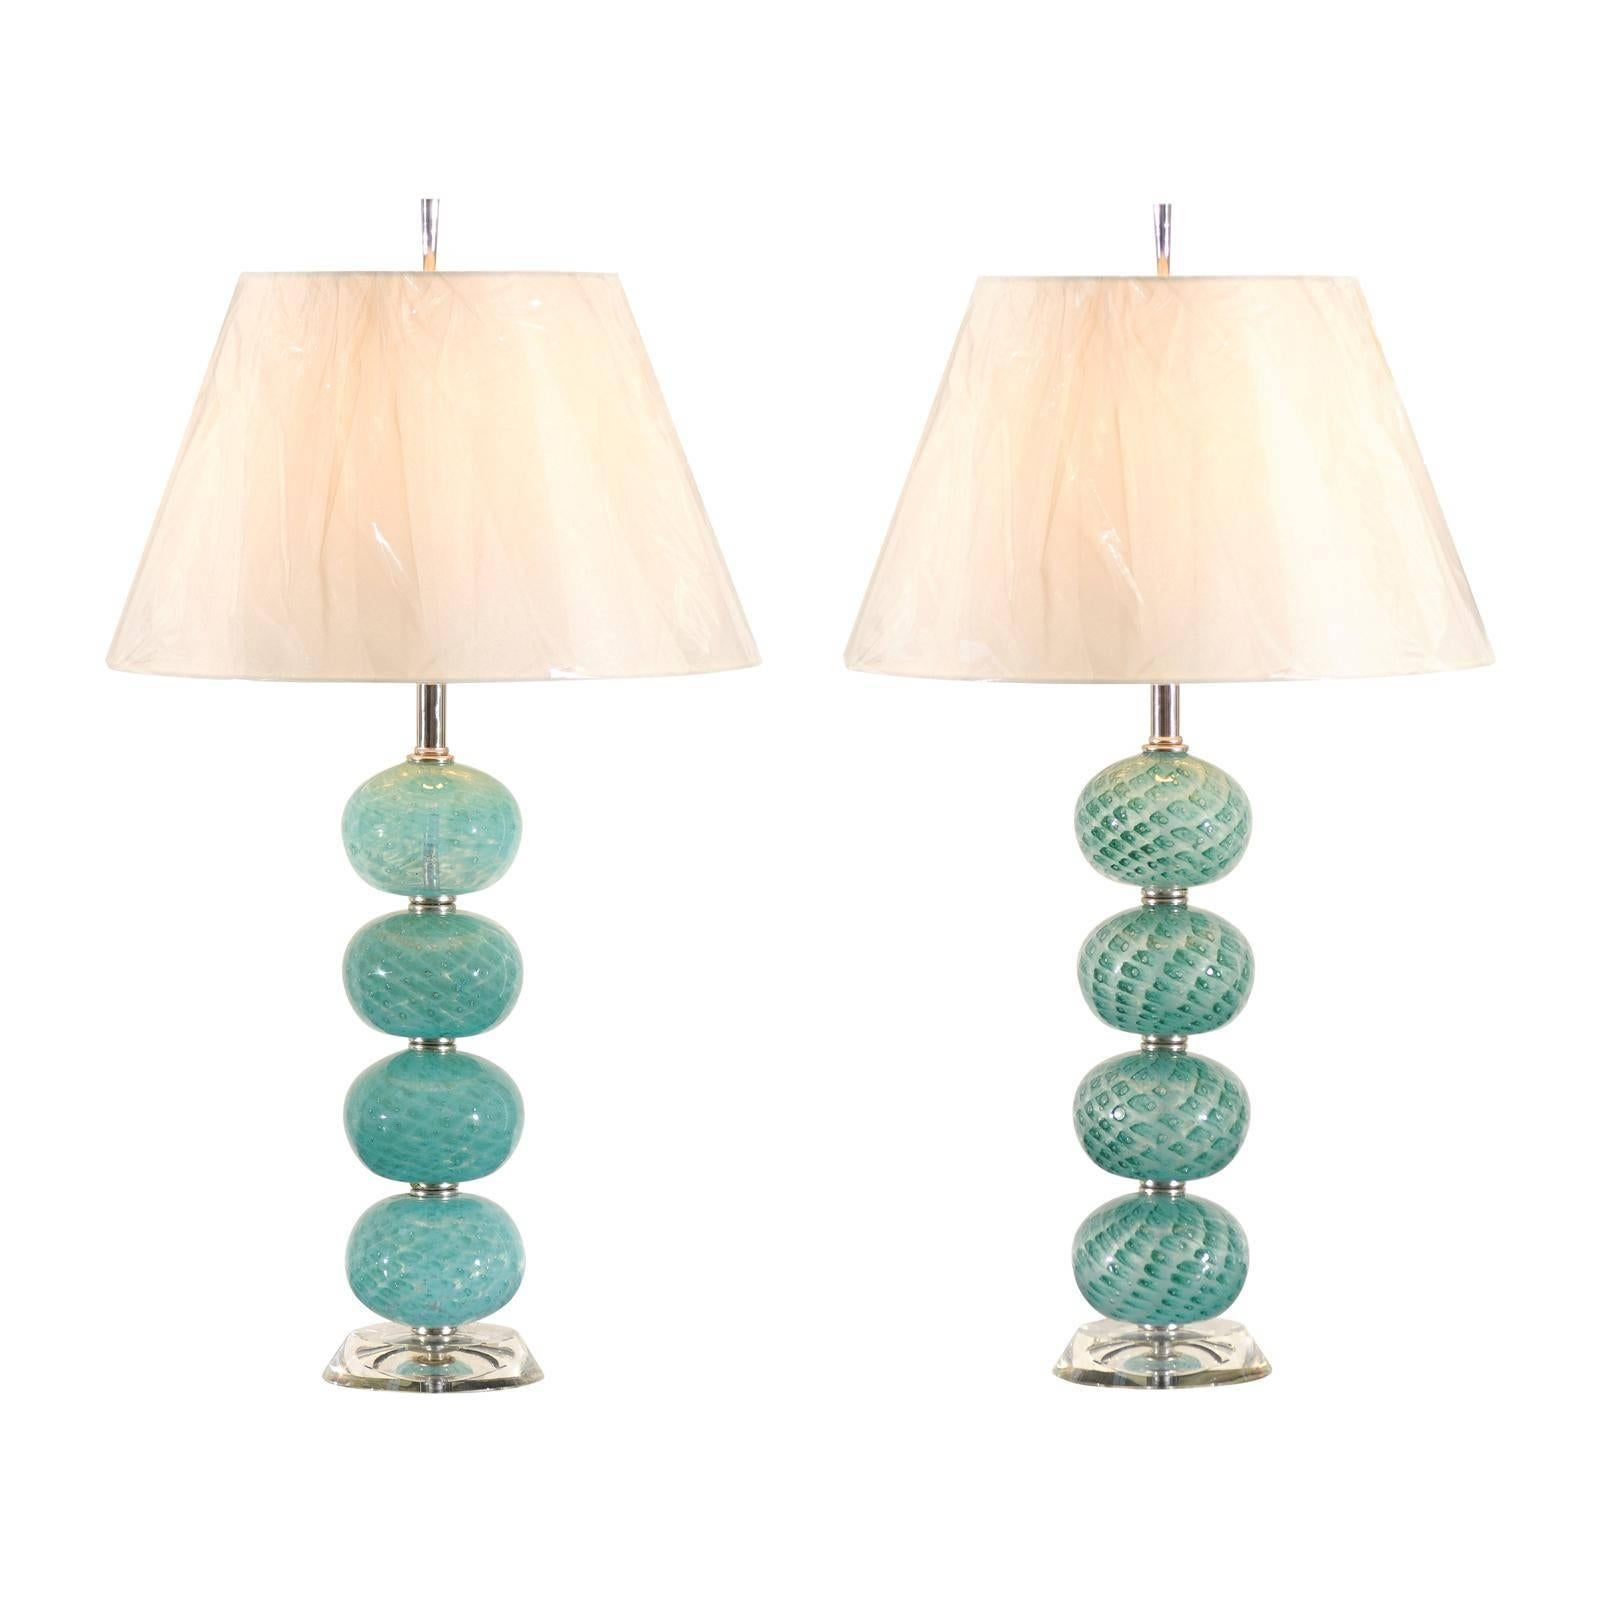 Outstanding Pair of Vintage Stacked Blown Glass Ball Murano Lamps